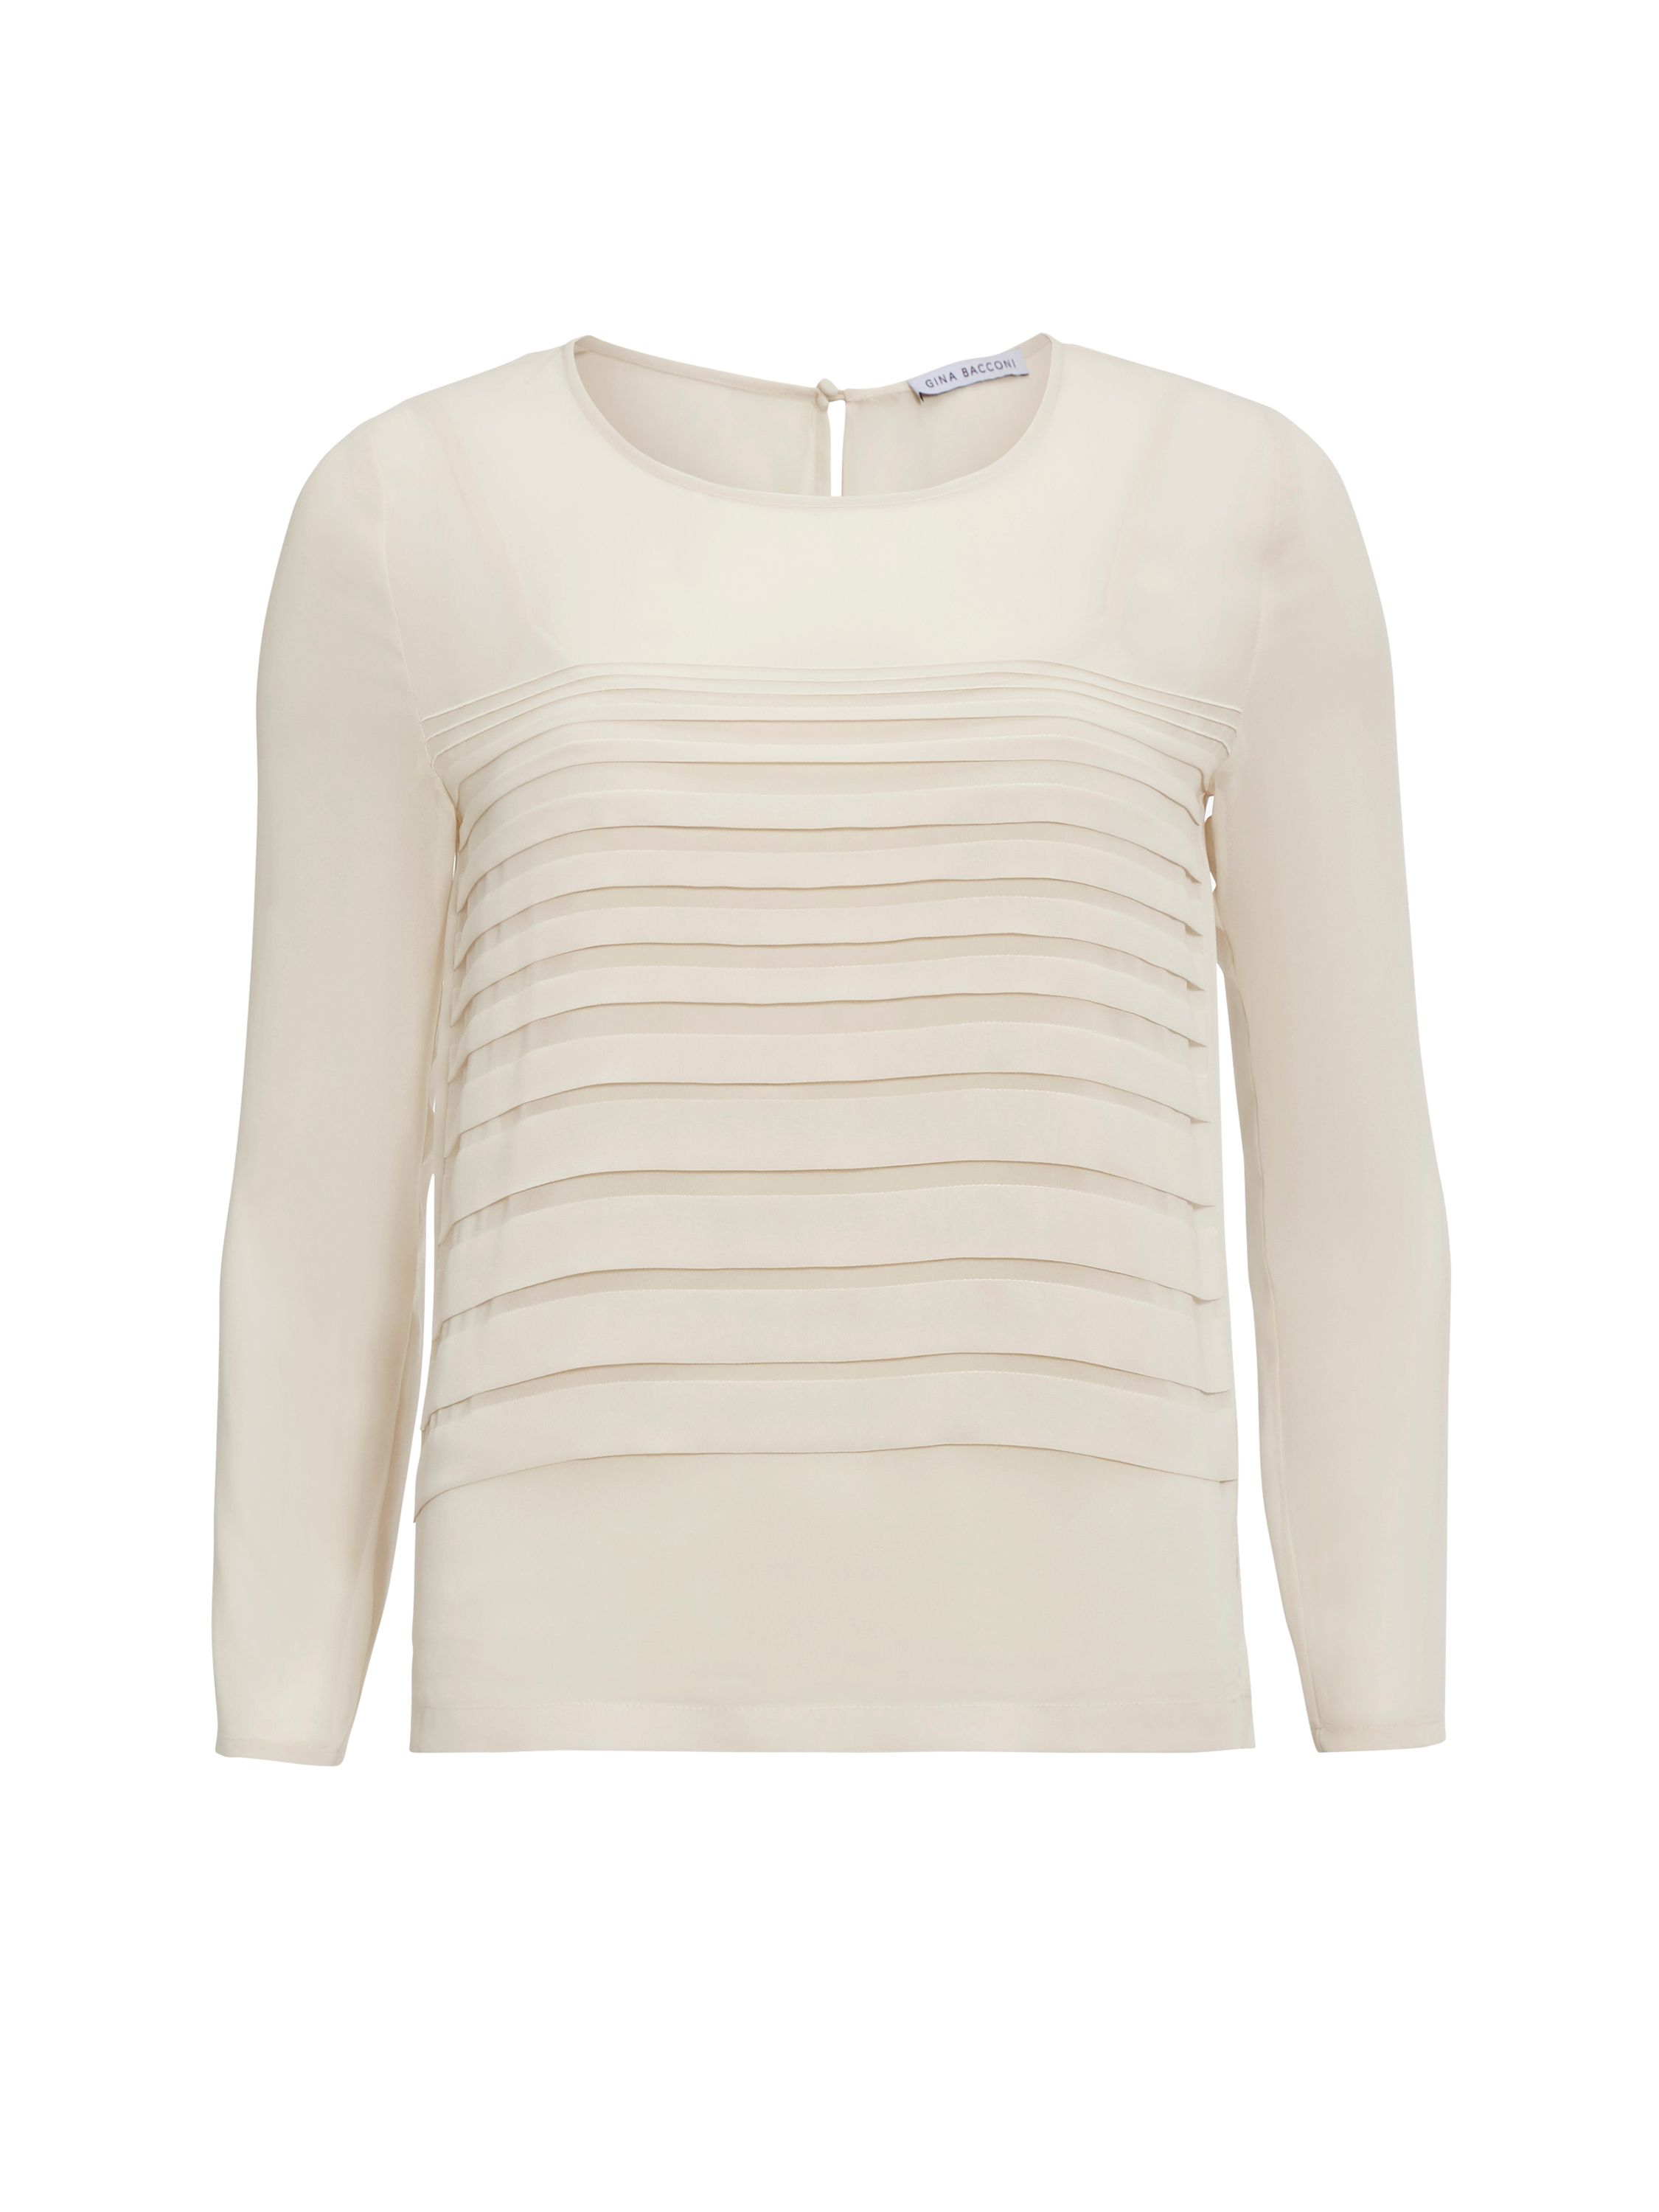 Gina Bacconi Chiffon top with pleated front, Cream